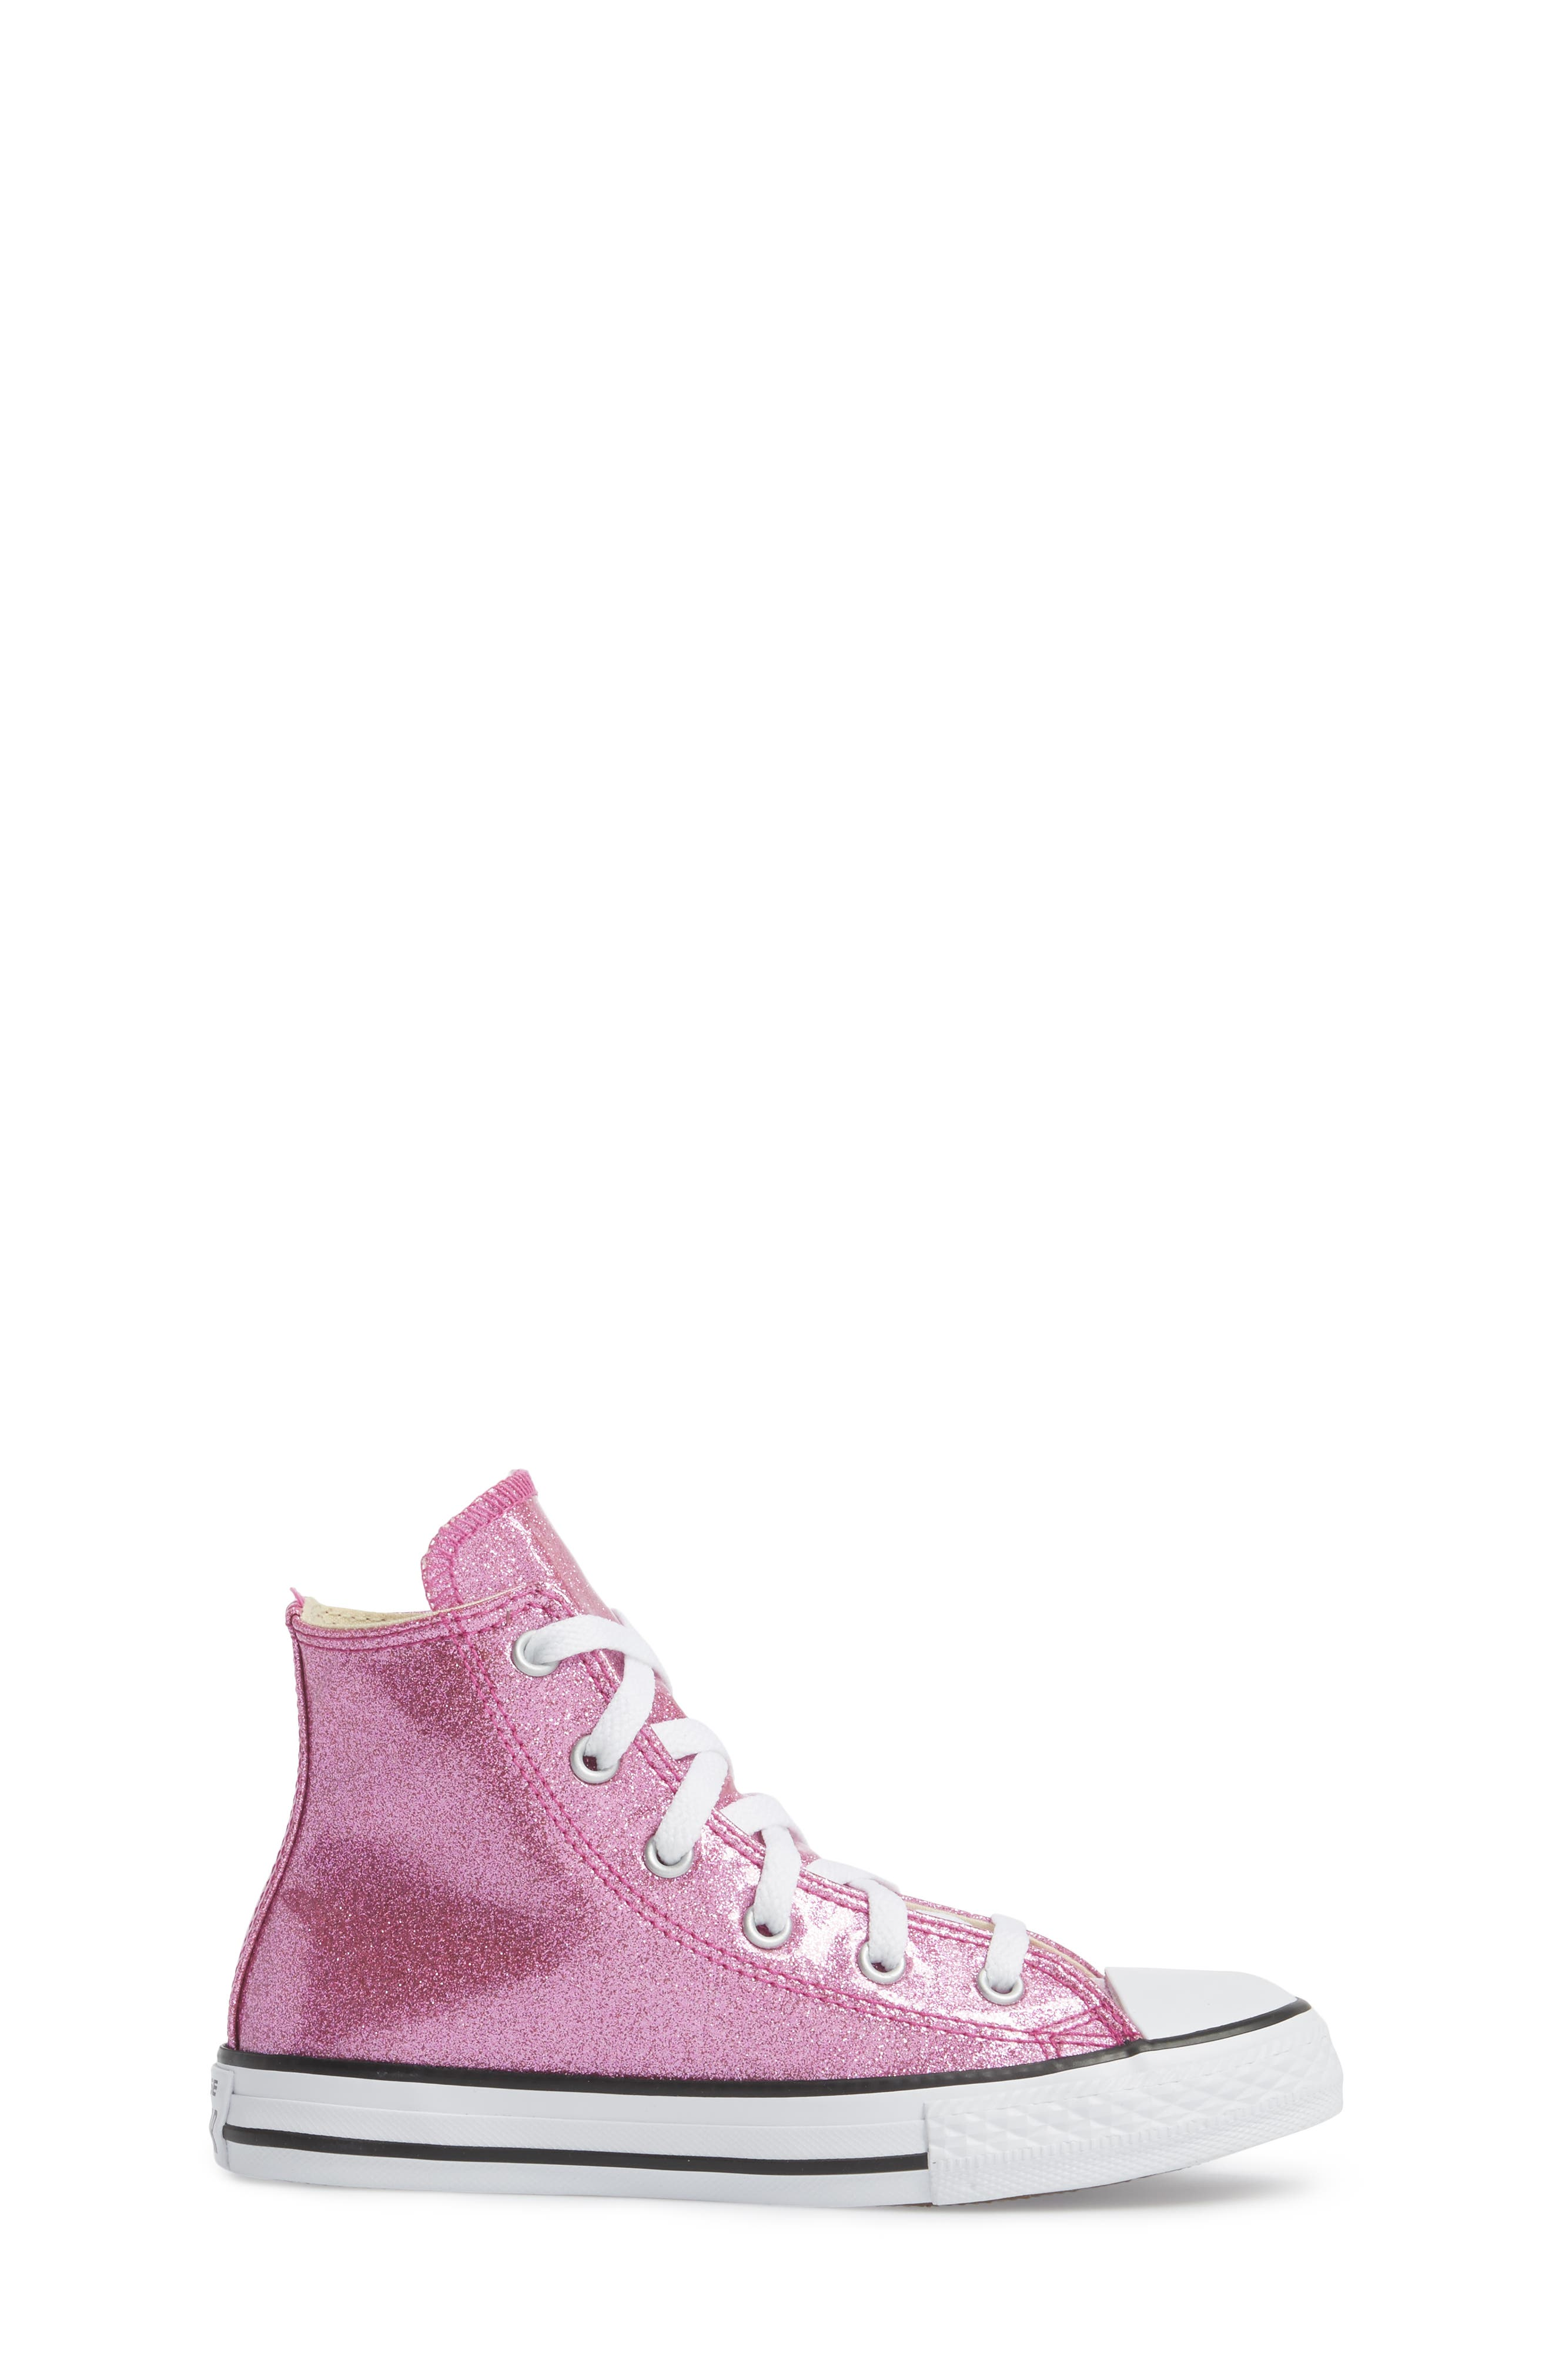 All Star<sup>®</sup> Glitter High Top Sneaker,                             Alternate thumbnail 3, color,                             Bright Violet